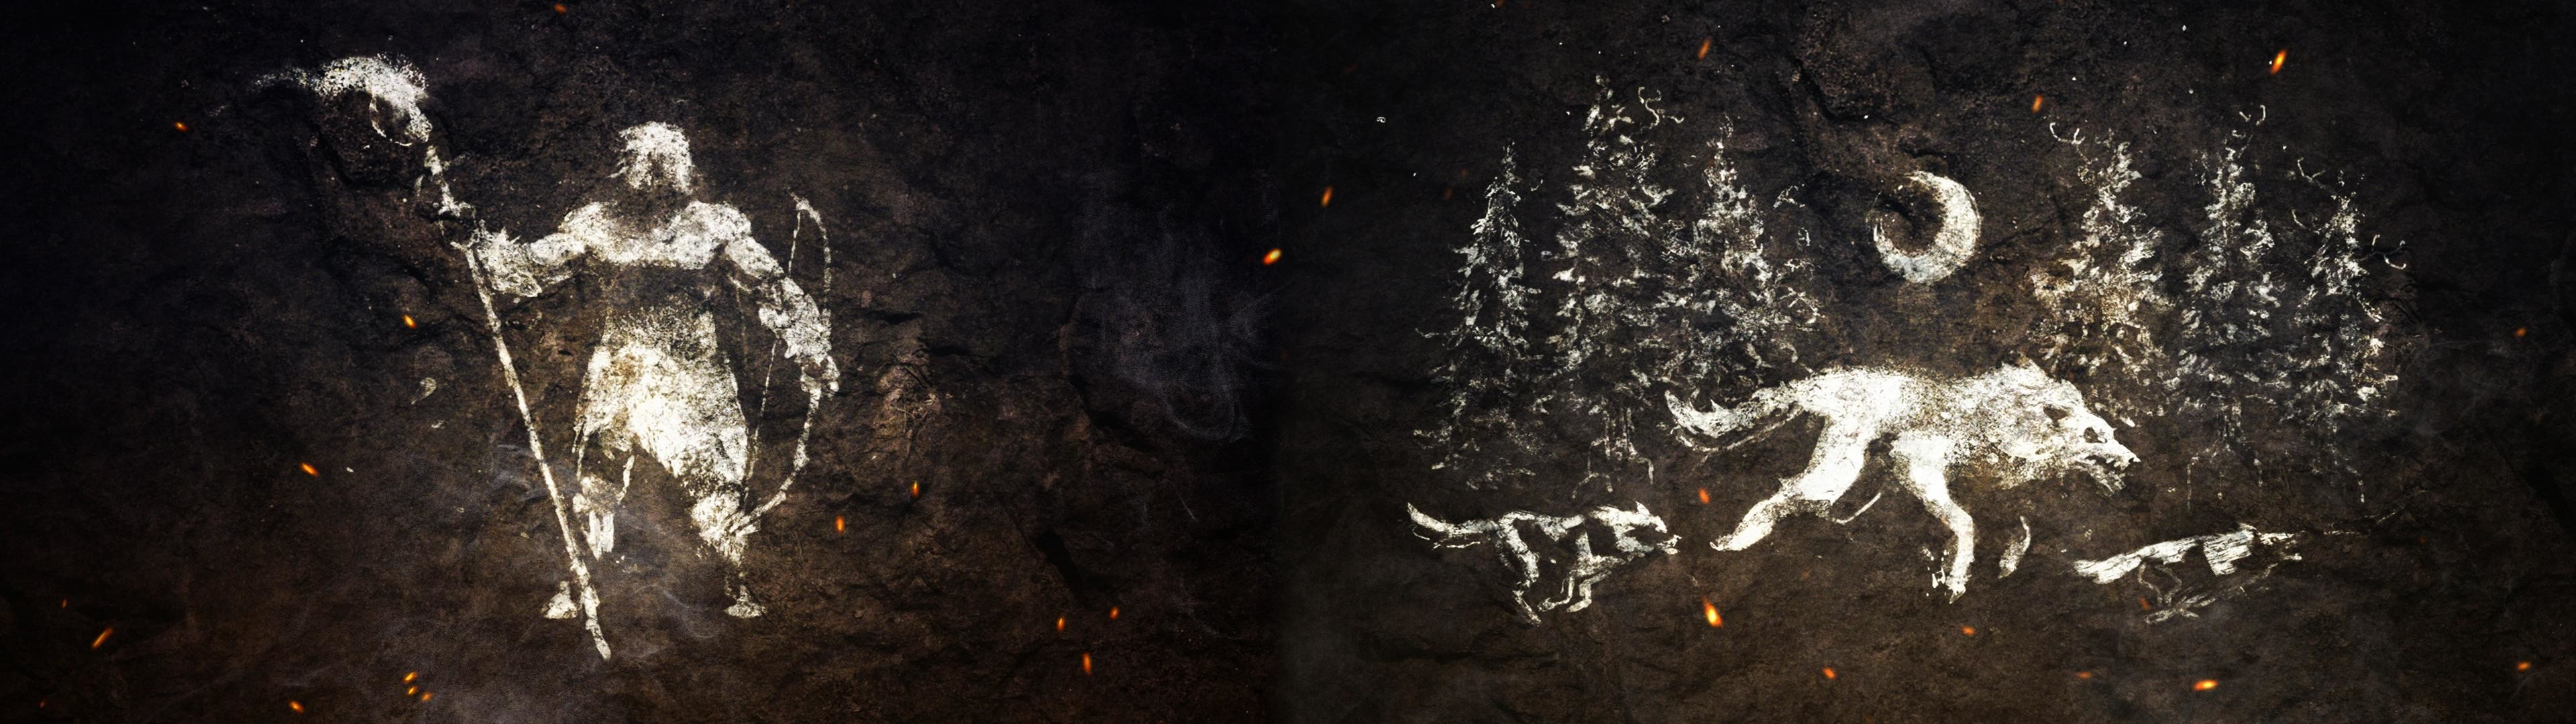 Made a FarCry: Primal Dual Monitor Wallpaper [3840×1080] …